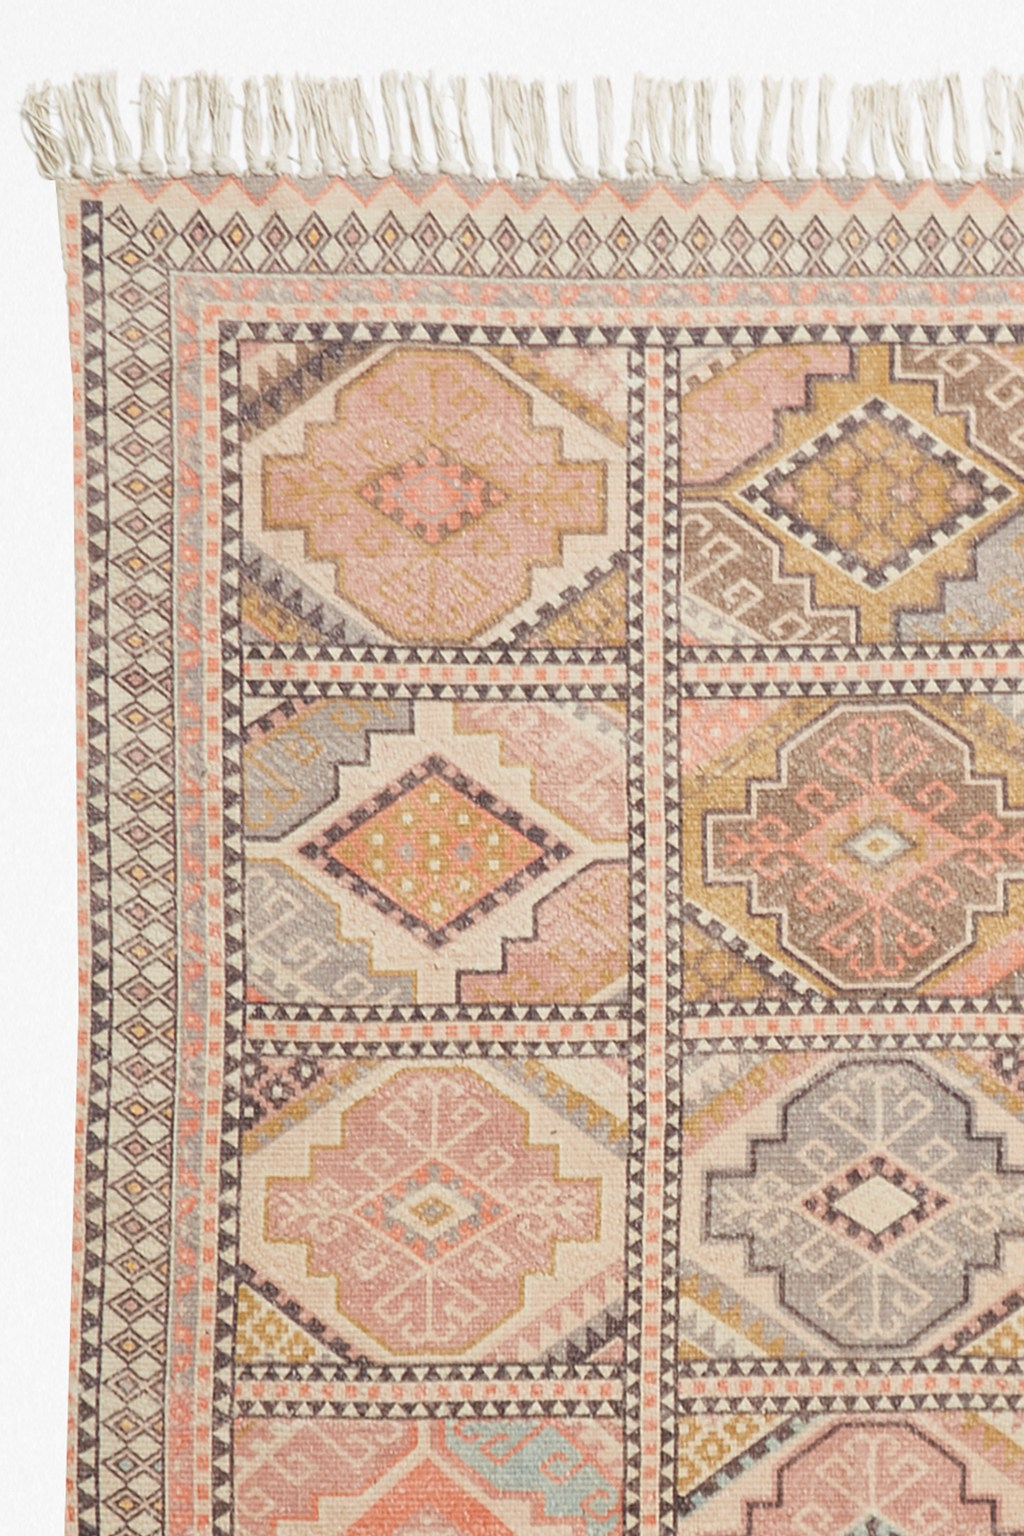 pale regarding area carpet pink unique decor room table rug grey floor best ottoman wainscoting for fashionable aztec beautiful on light kitchen colorful design with also amazing popular ideas living